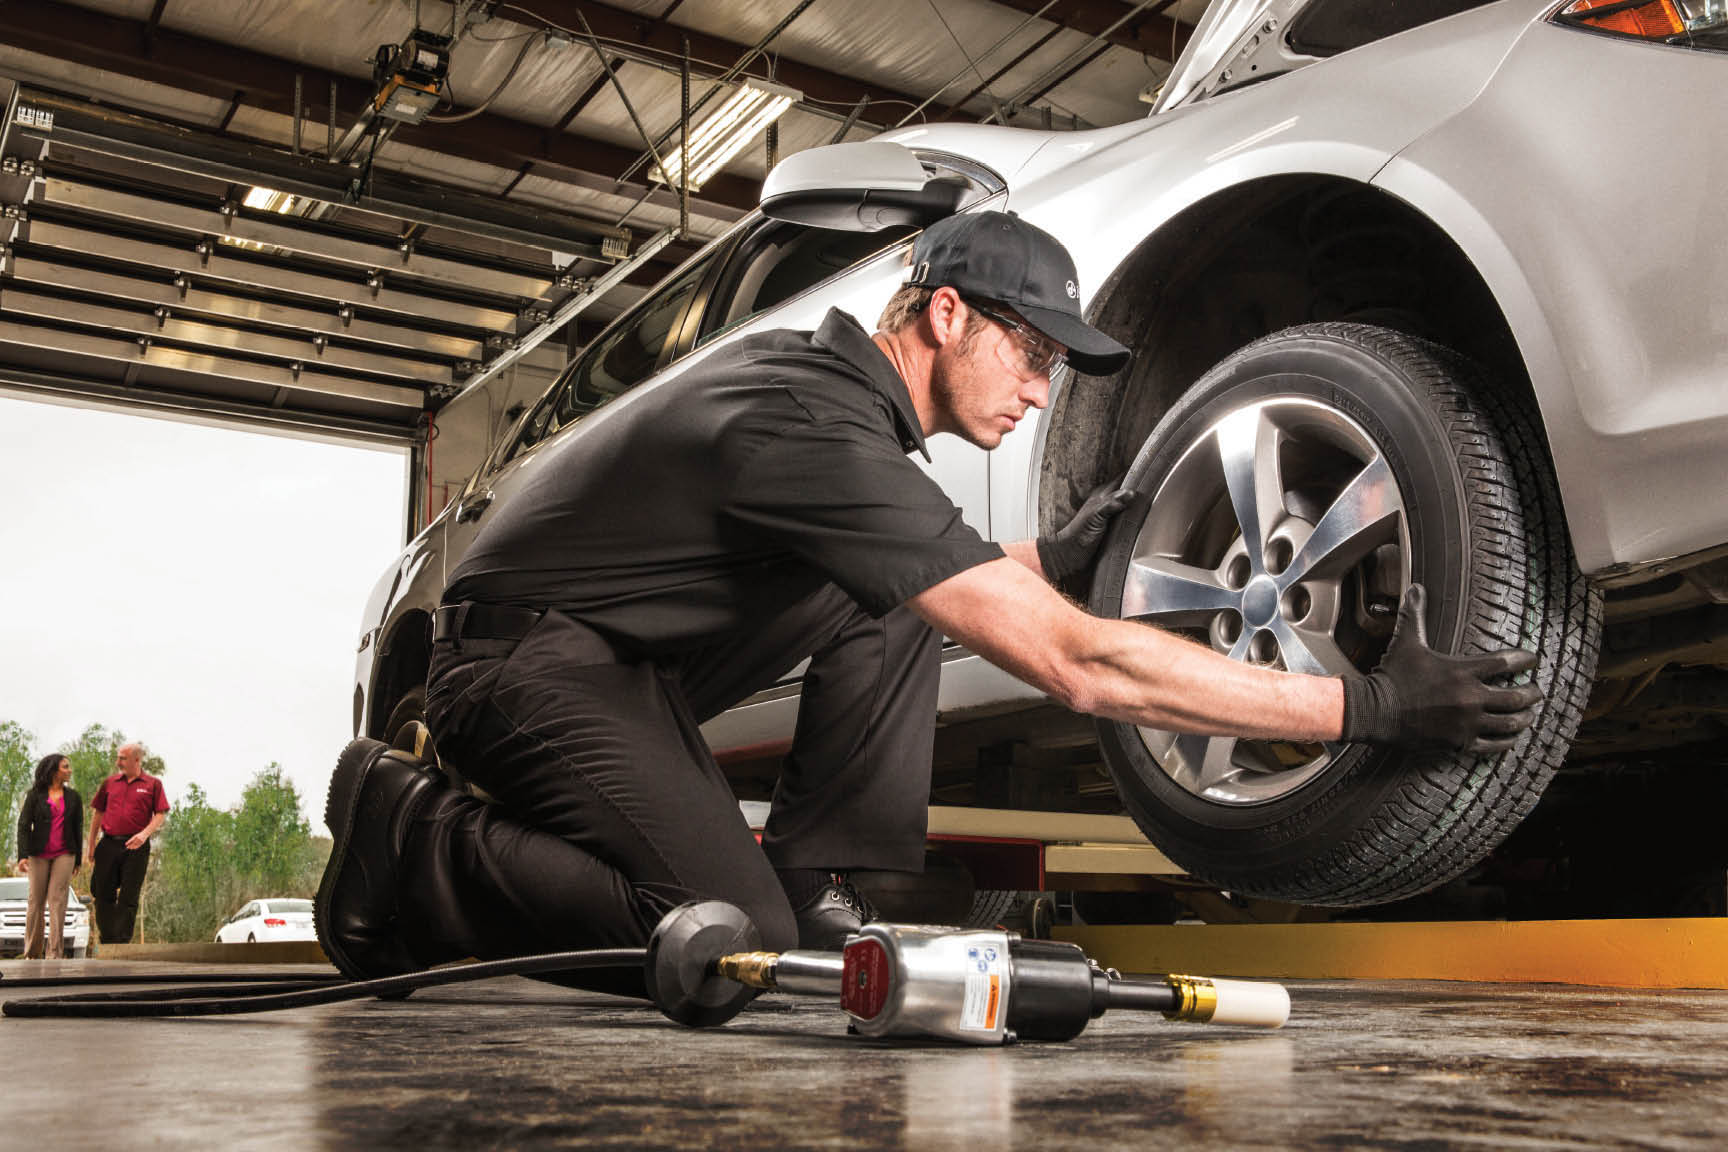 Jiffy Lube techs make sure vehicles have well-inflated car tires